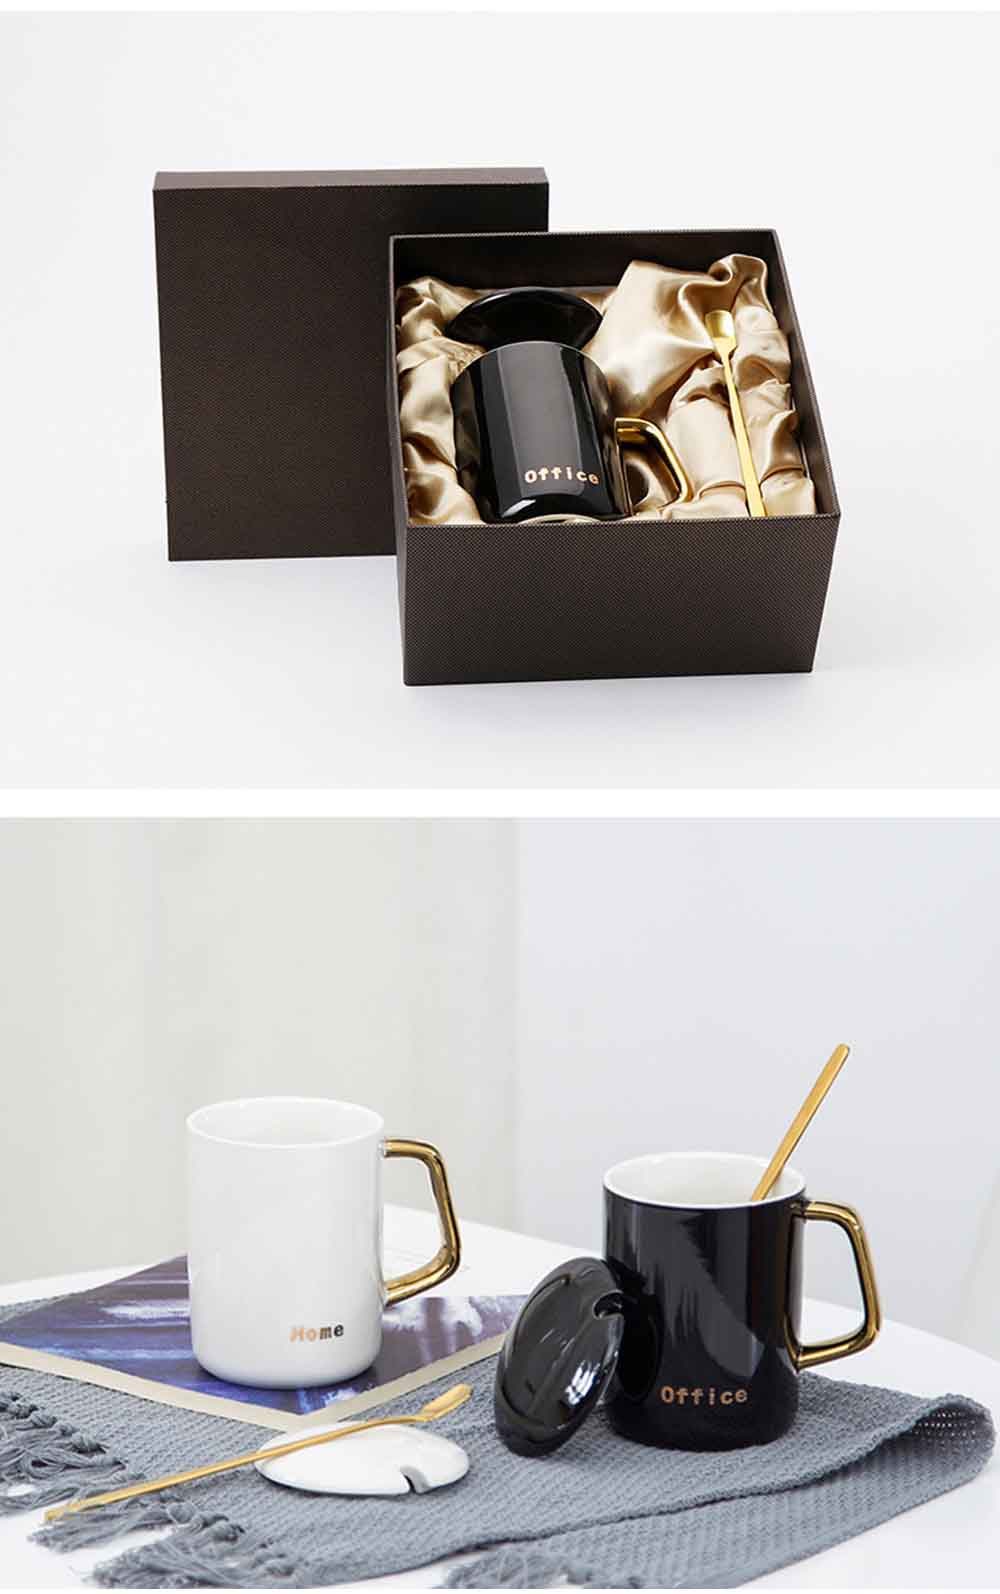 Black and White Ceramic Coffee Mug with Gold Plated Handle 13